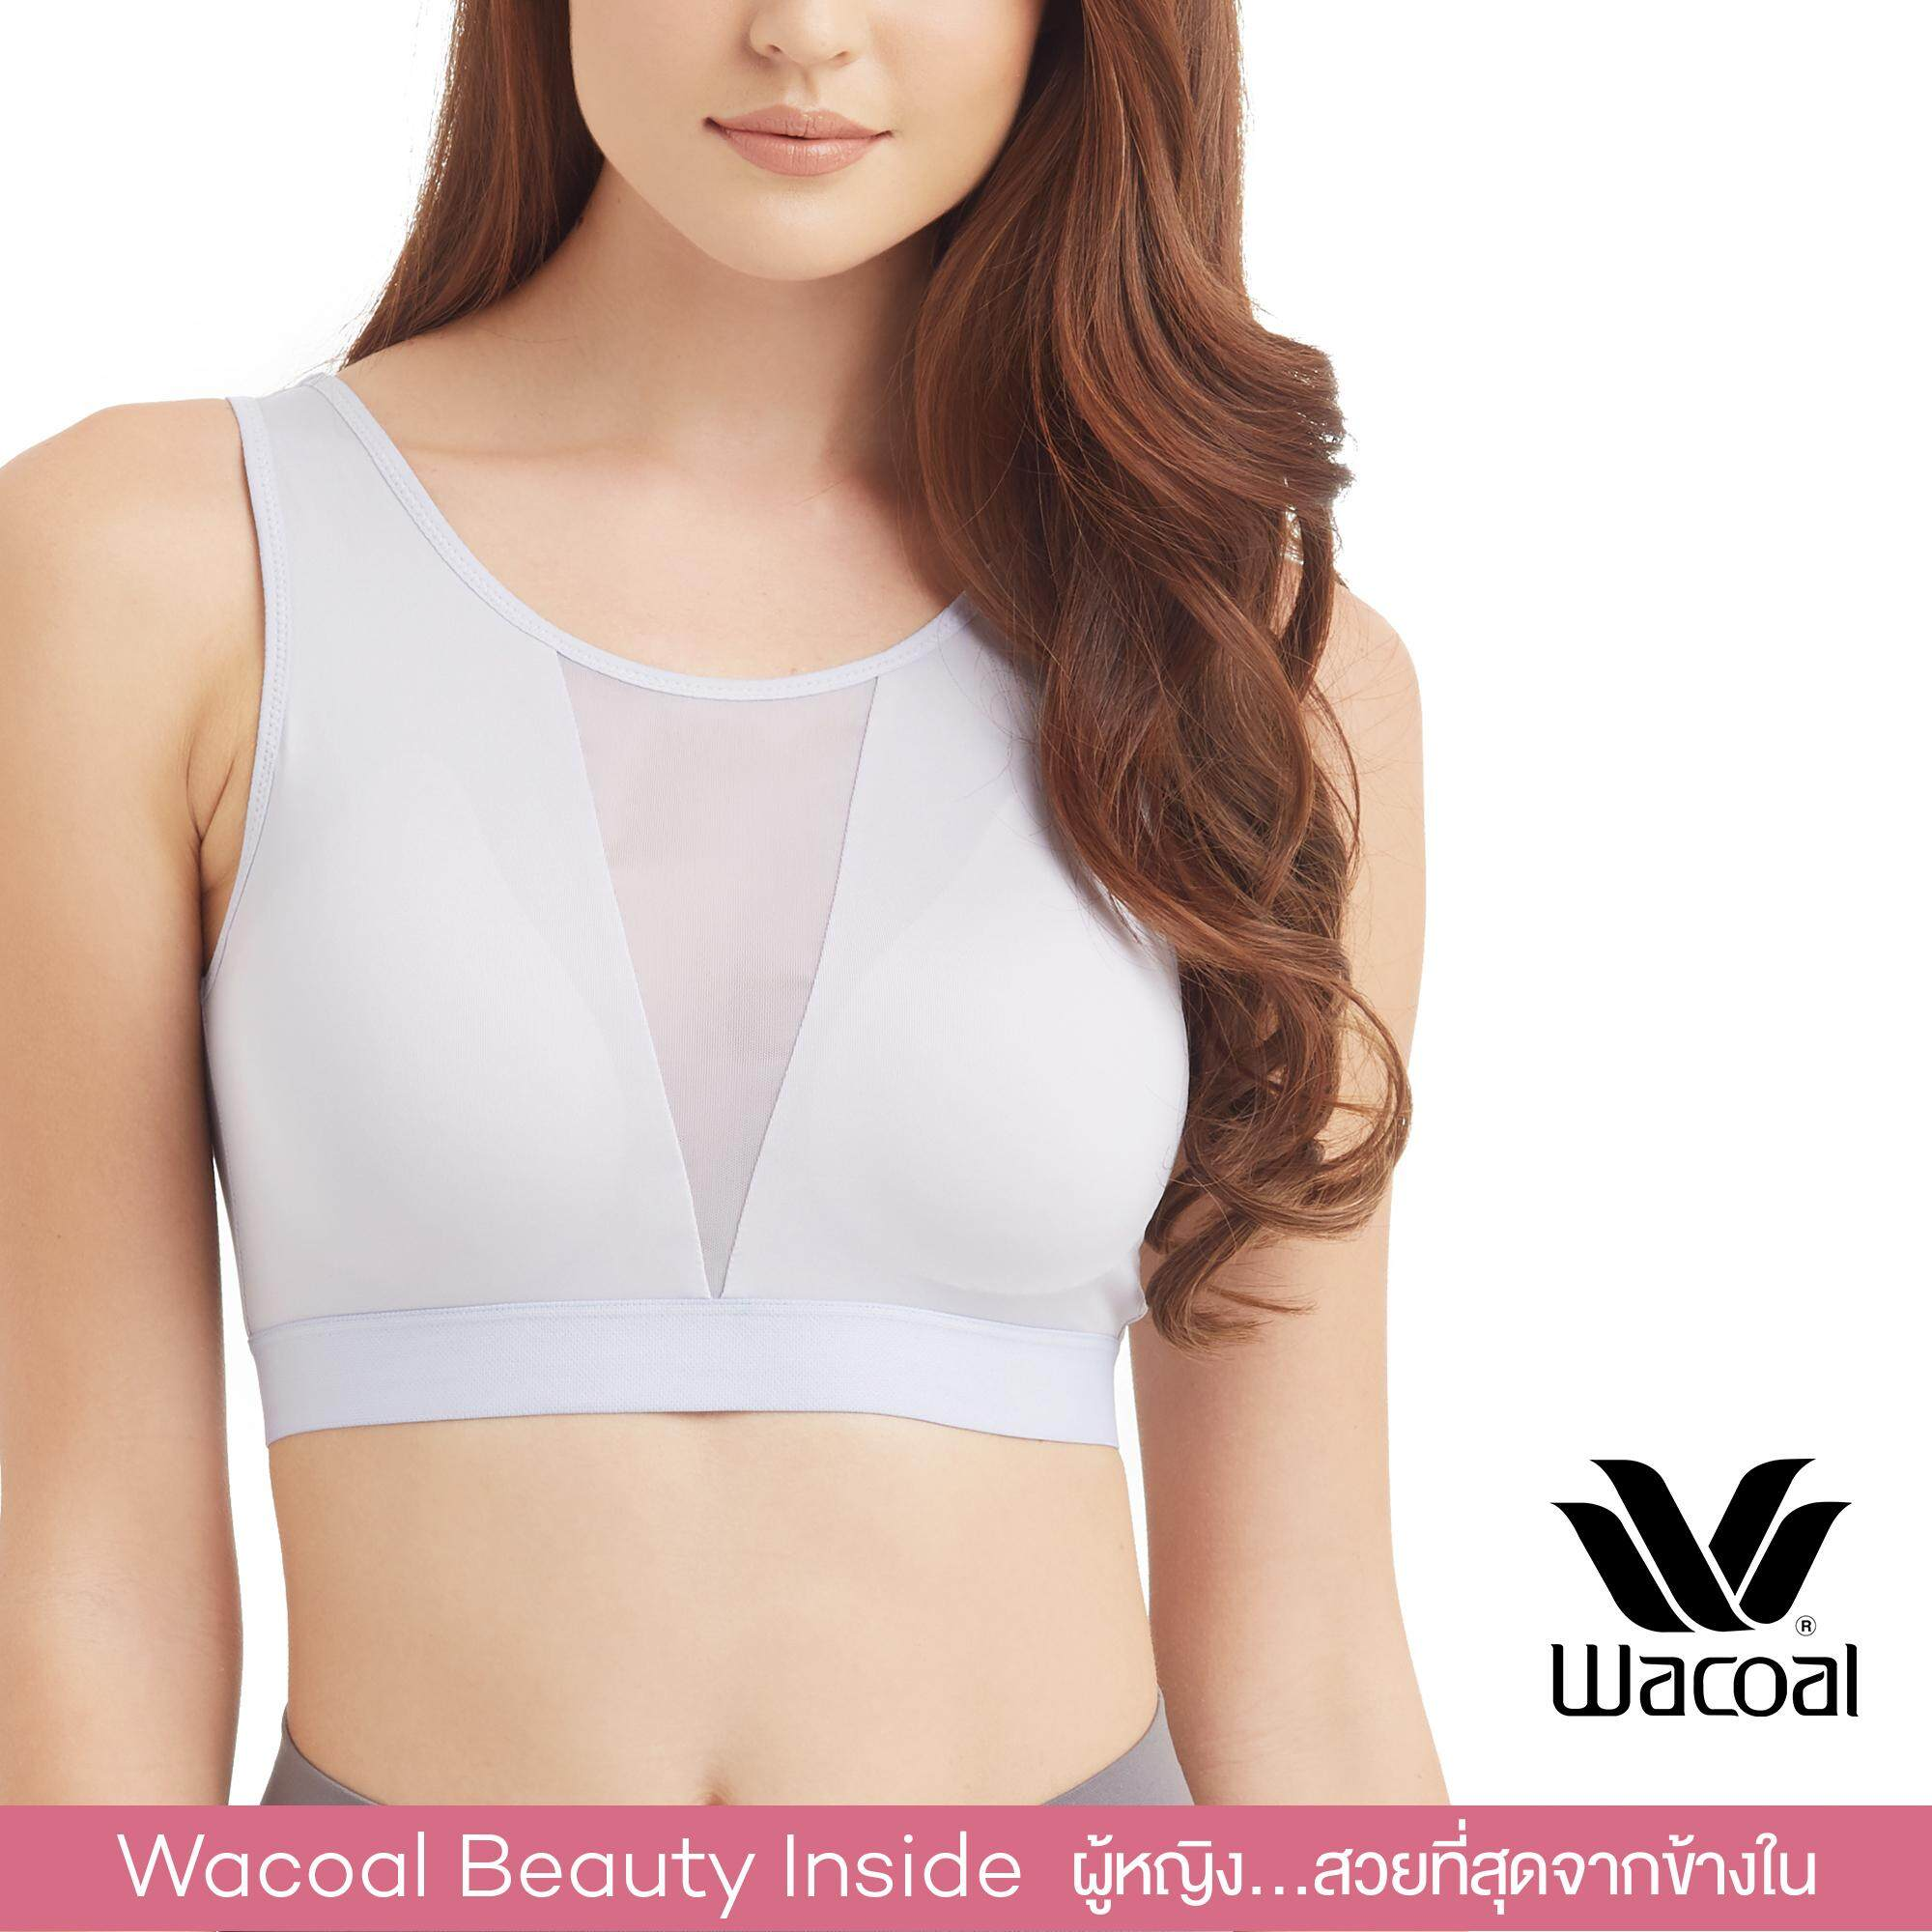 Wacoal Lingerie Casual bra (Wireless support) บราสวมหัว - WH9D21